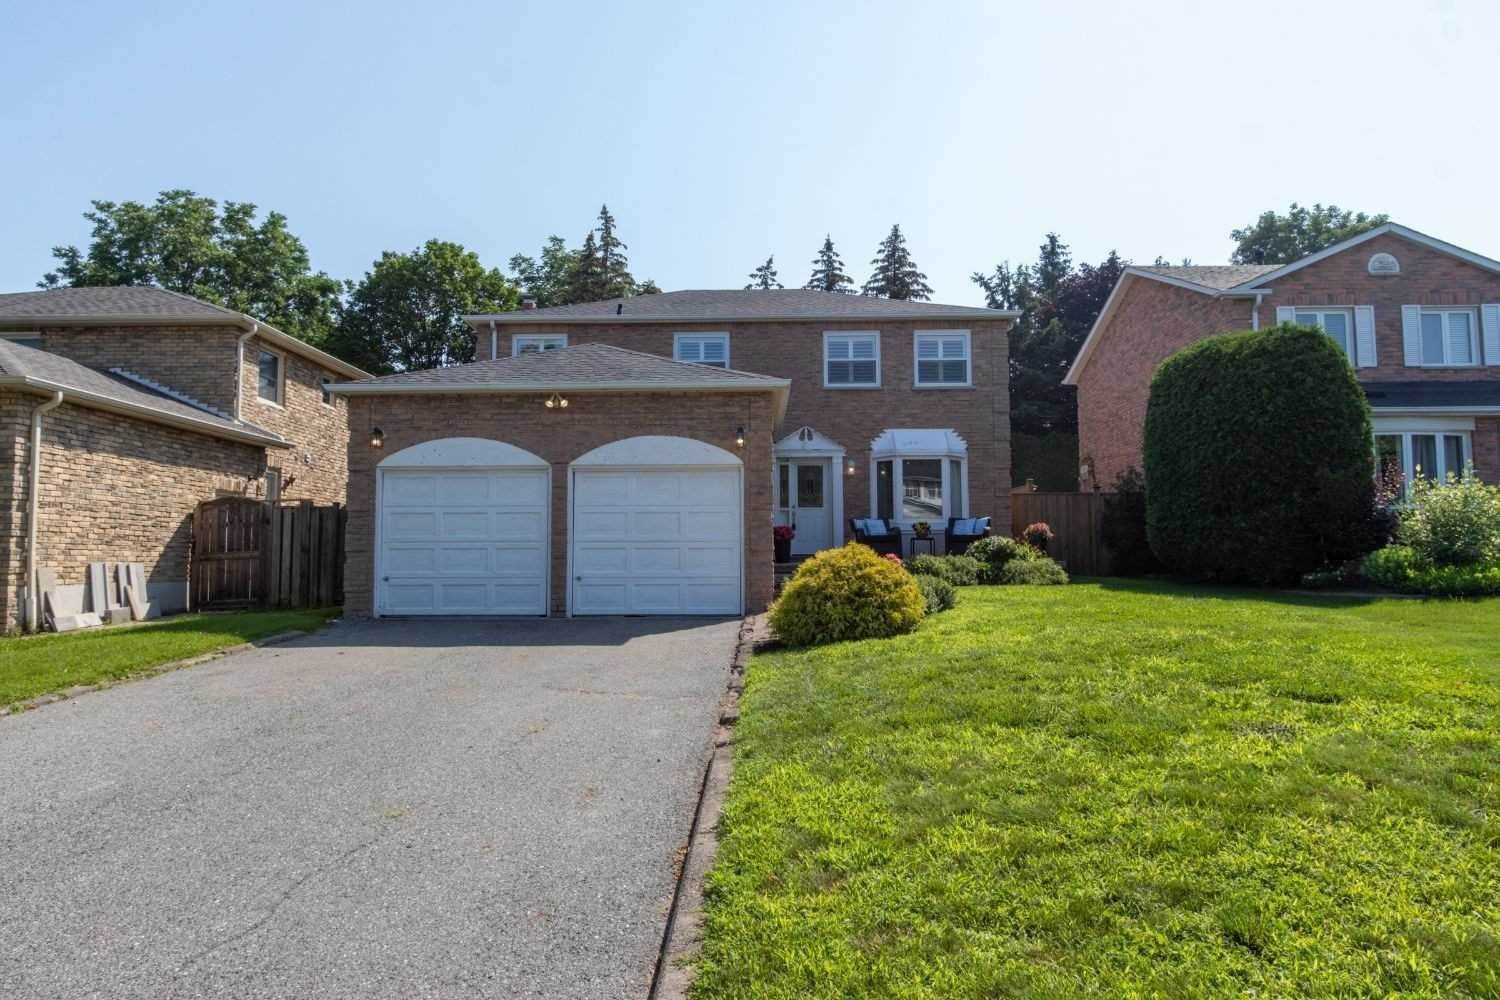 Photo of 43 Hawley Cres, Whitby, ON L1N6X6 (MLS # E5322914)